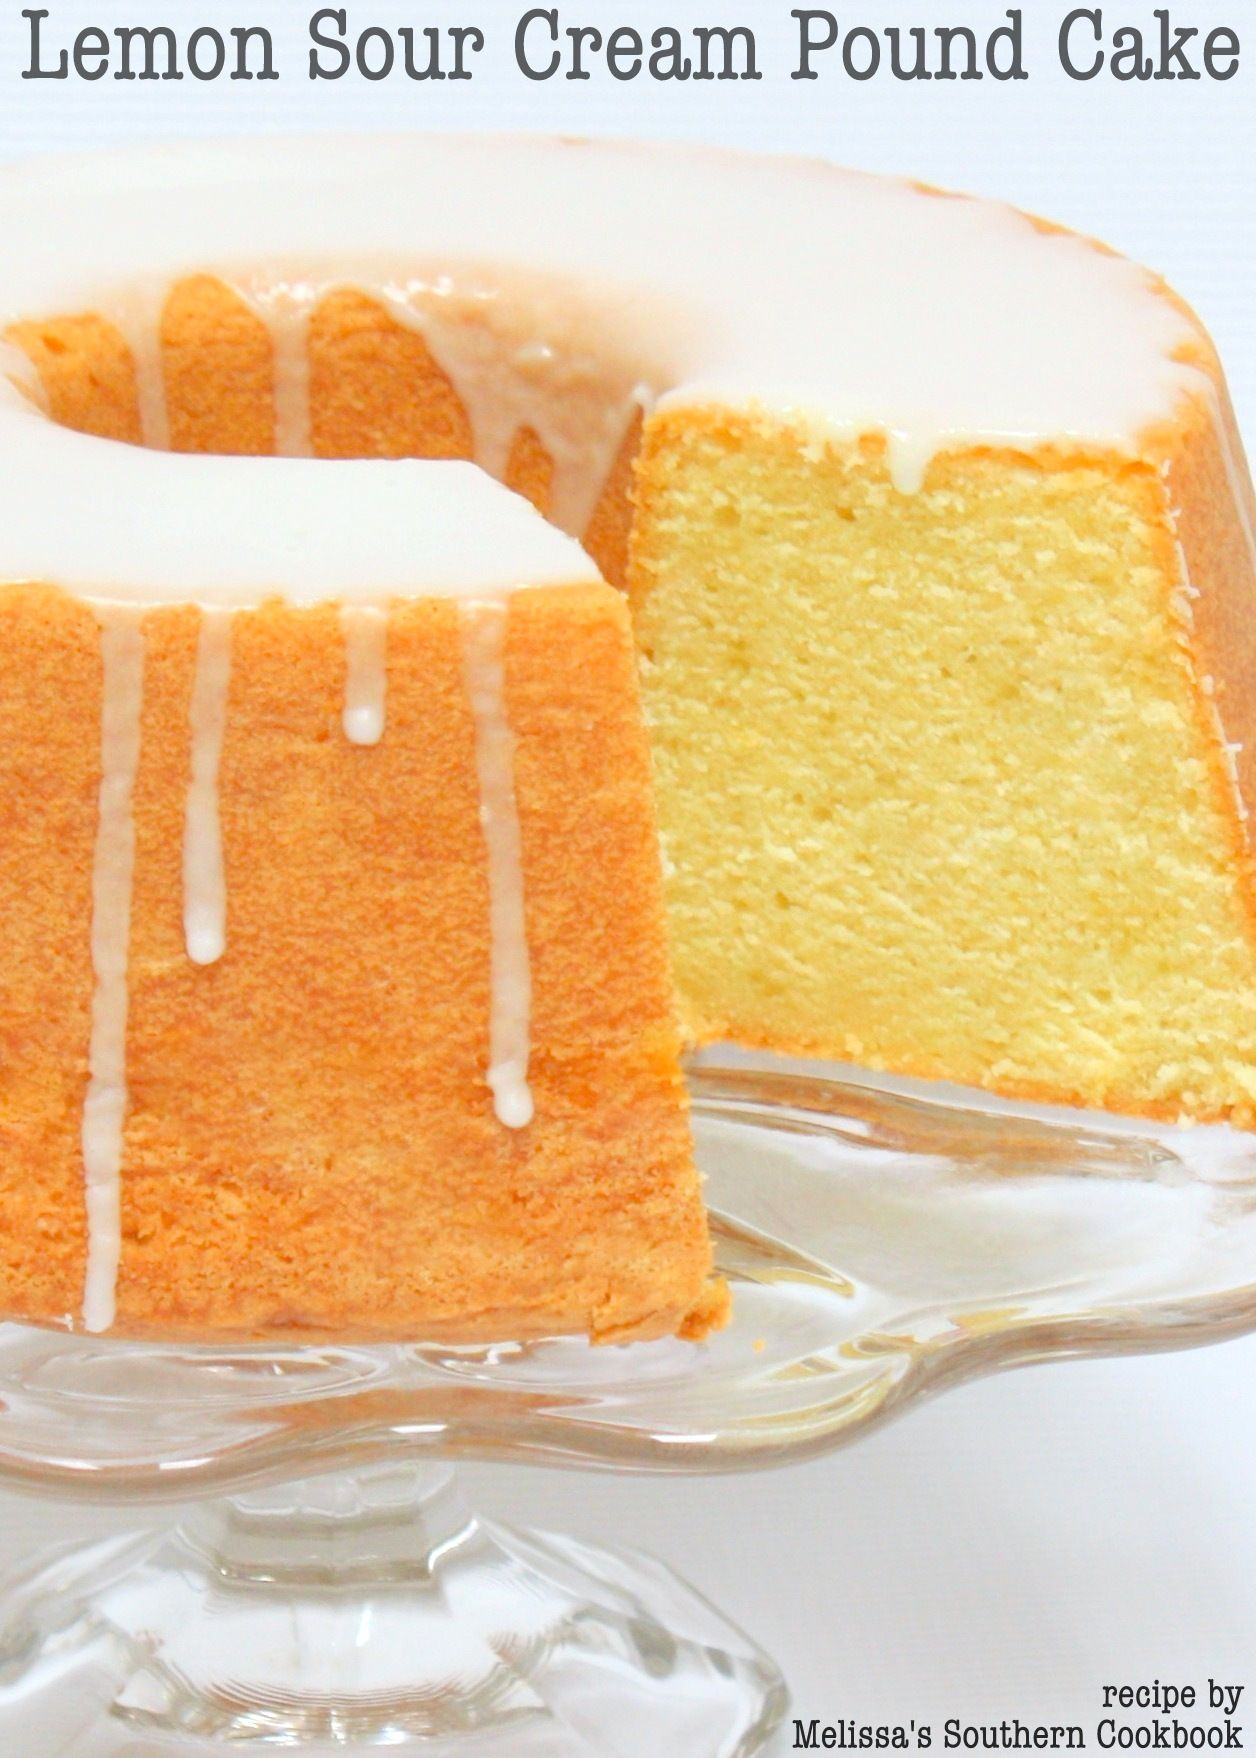 Lemon Sour Cream Pound Cake Recipe Cookbook Giveaway Now Closed Recipe Sour Cream Pound Cake Sour Cream Cake Pound Cake Recipes